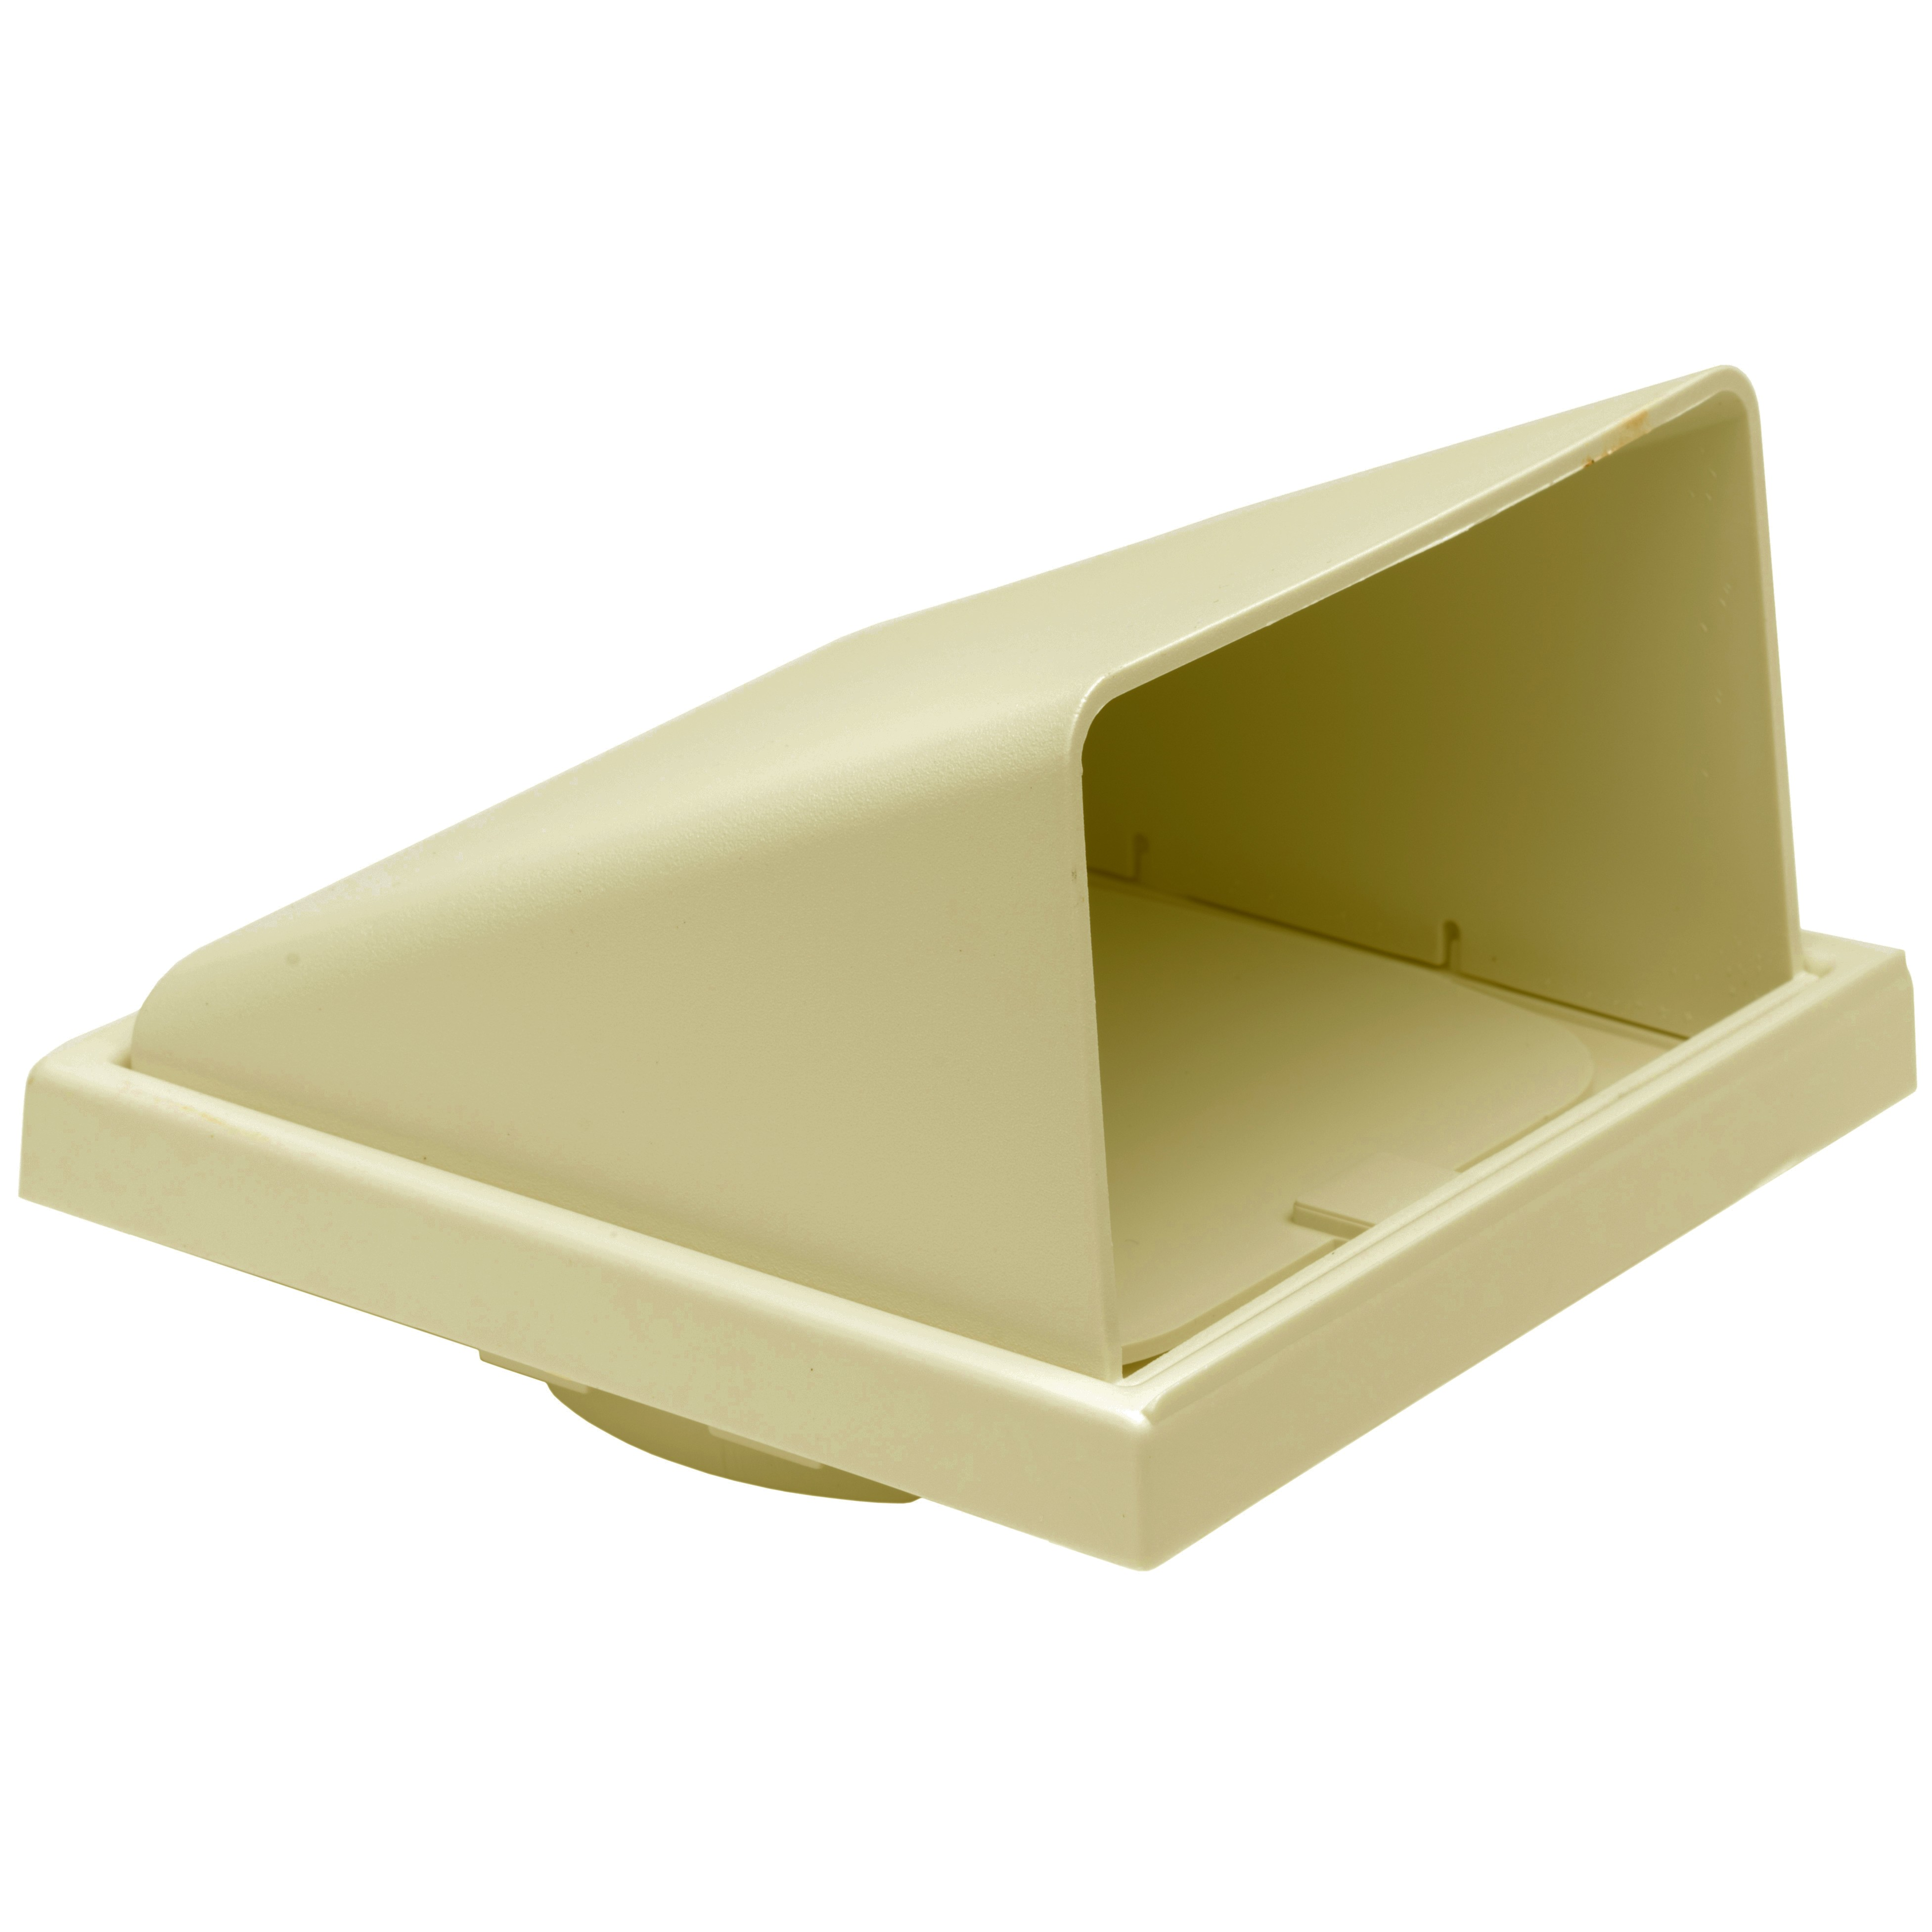 Manrose Round Ducting Pipe Wall Hood Cowled Outlet - Cream, 100mm